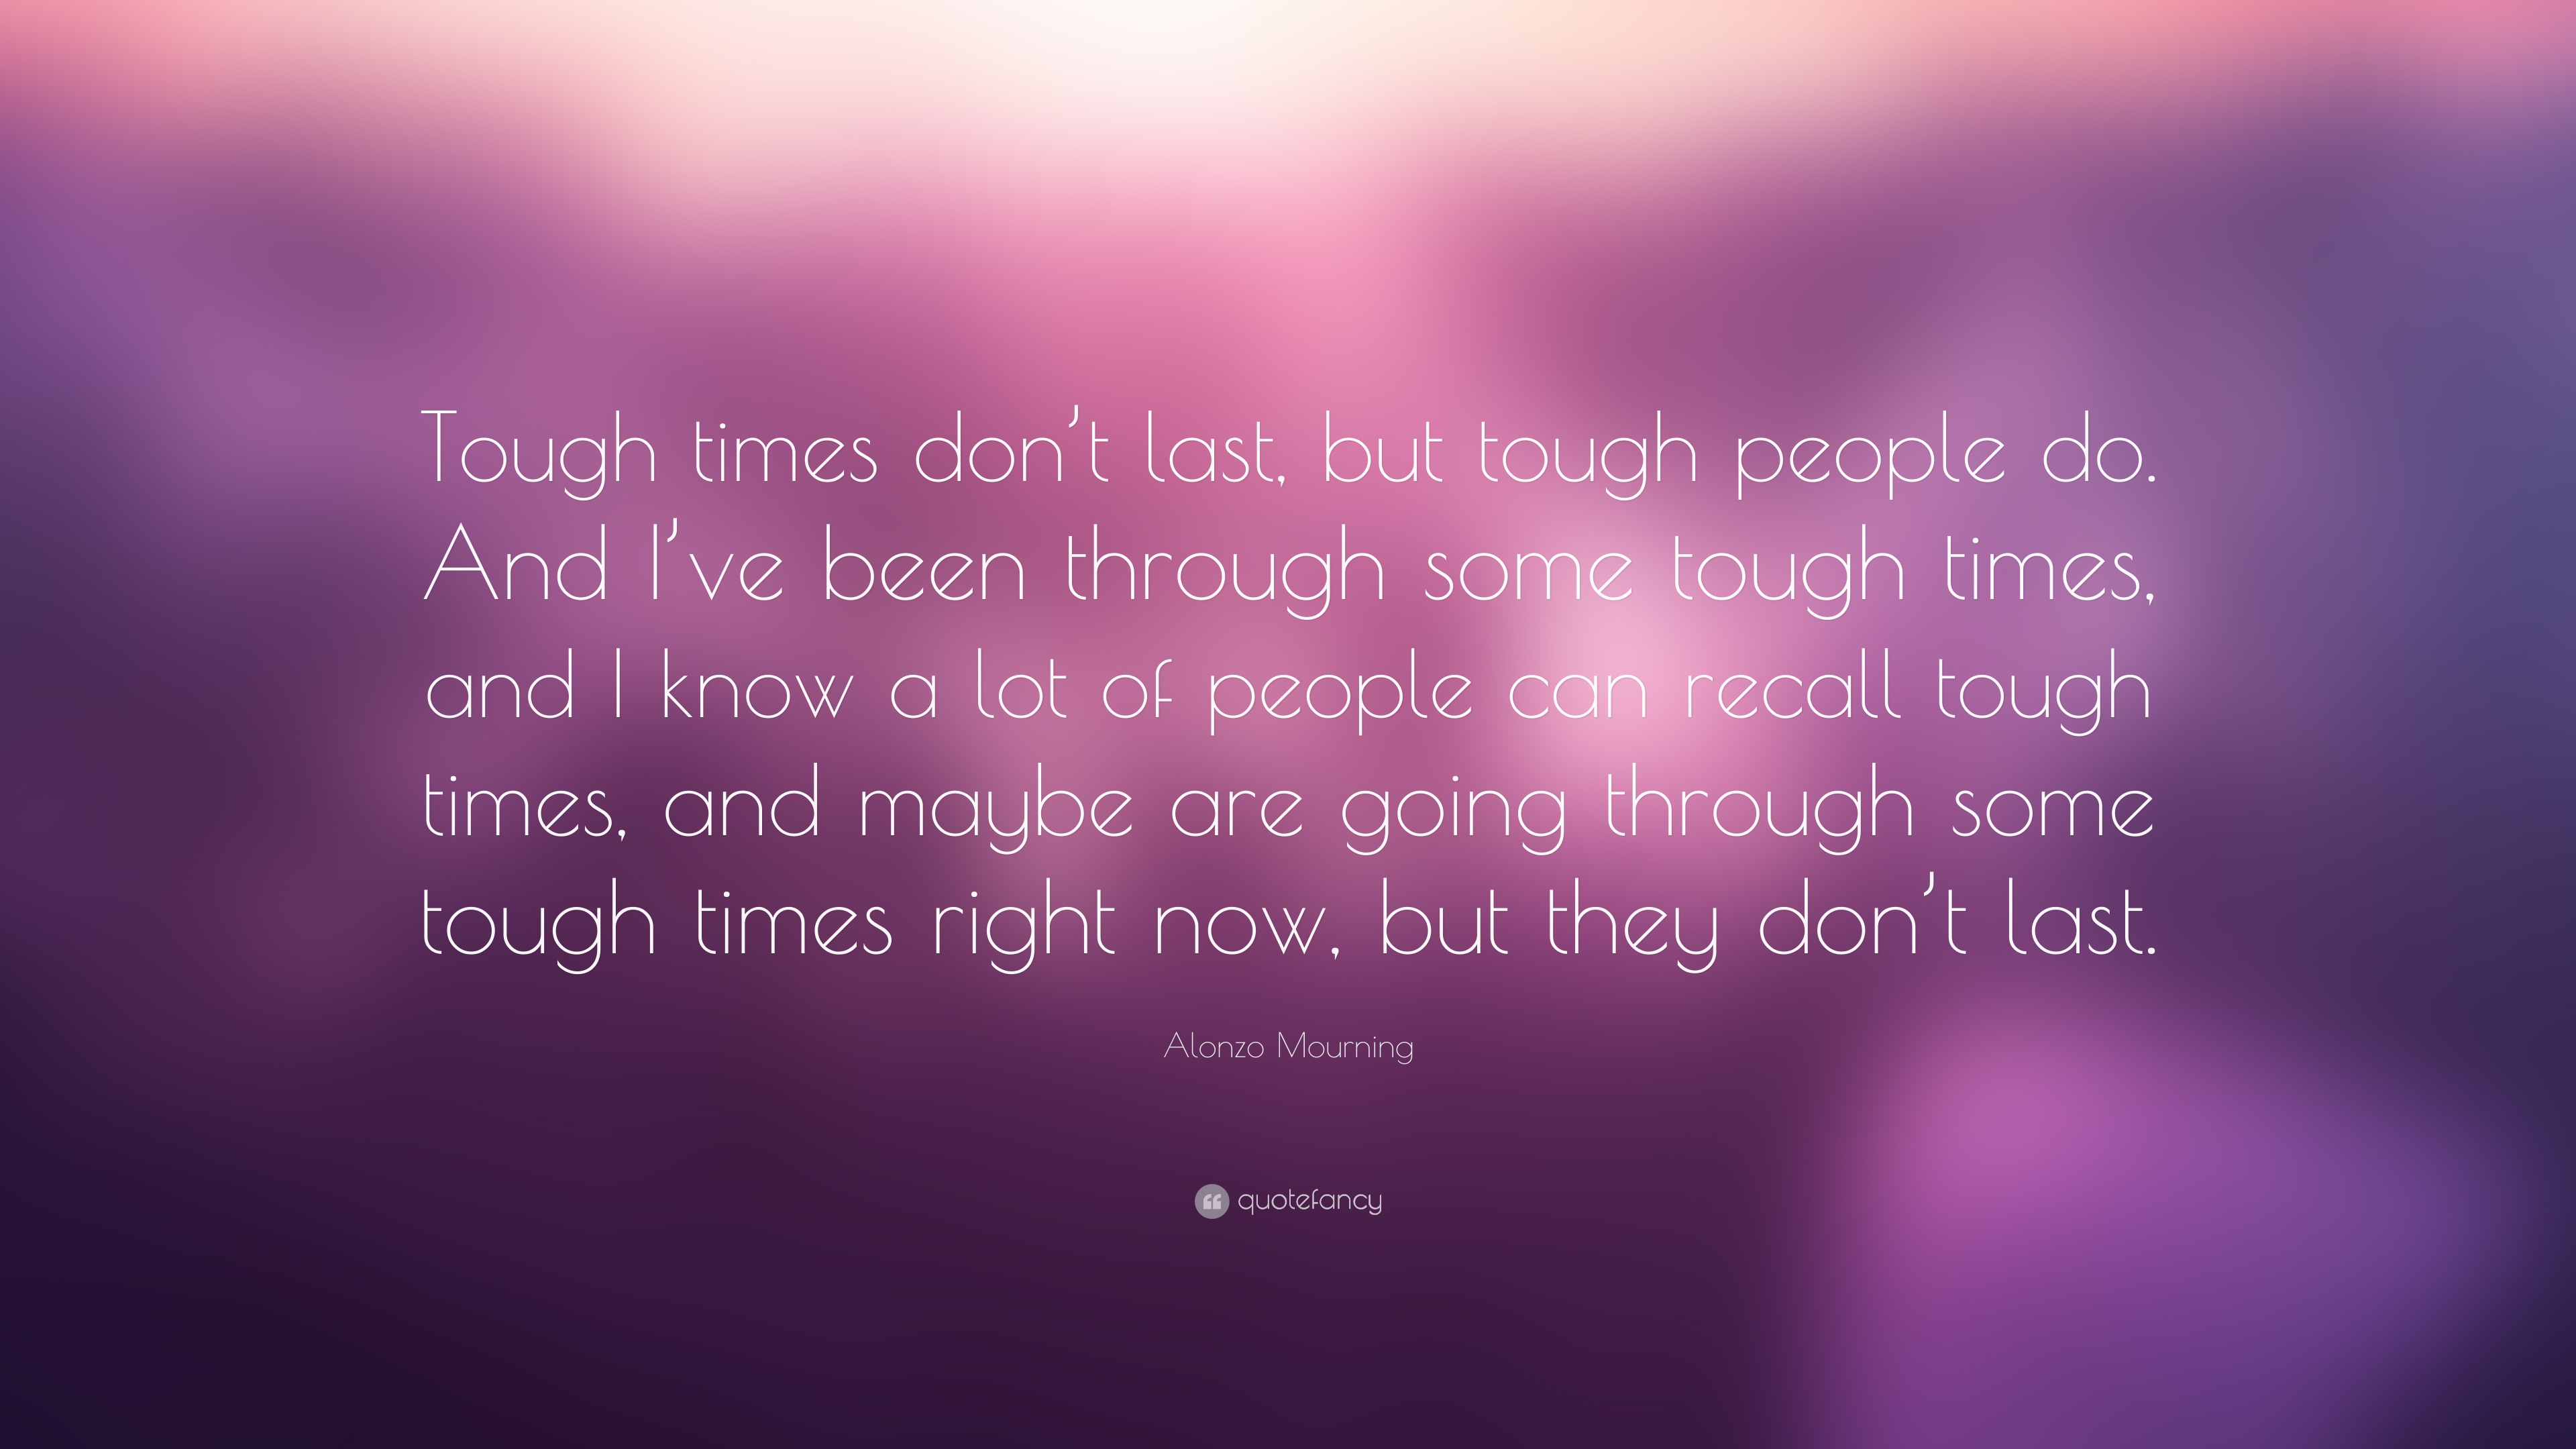 Mourning Quotes Entrancing Alonzo Mourning Quotes 25 Wallpapers  Quotefancy